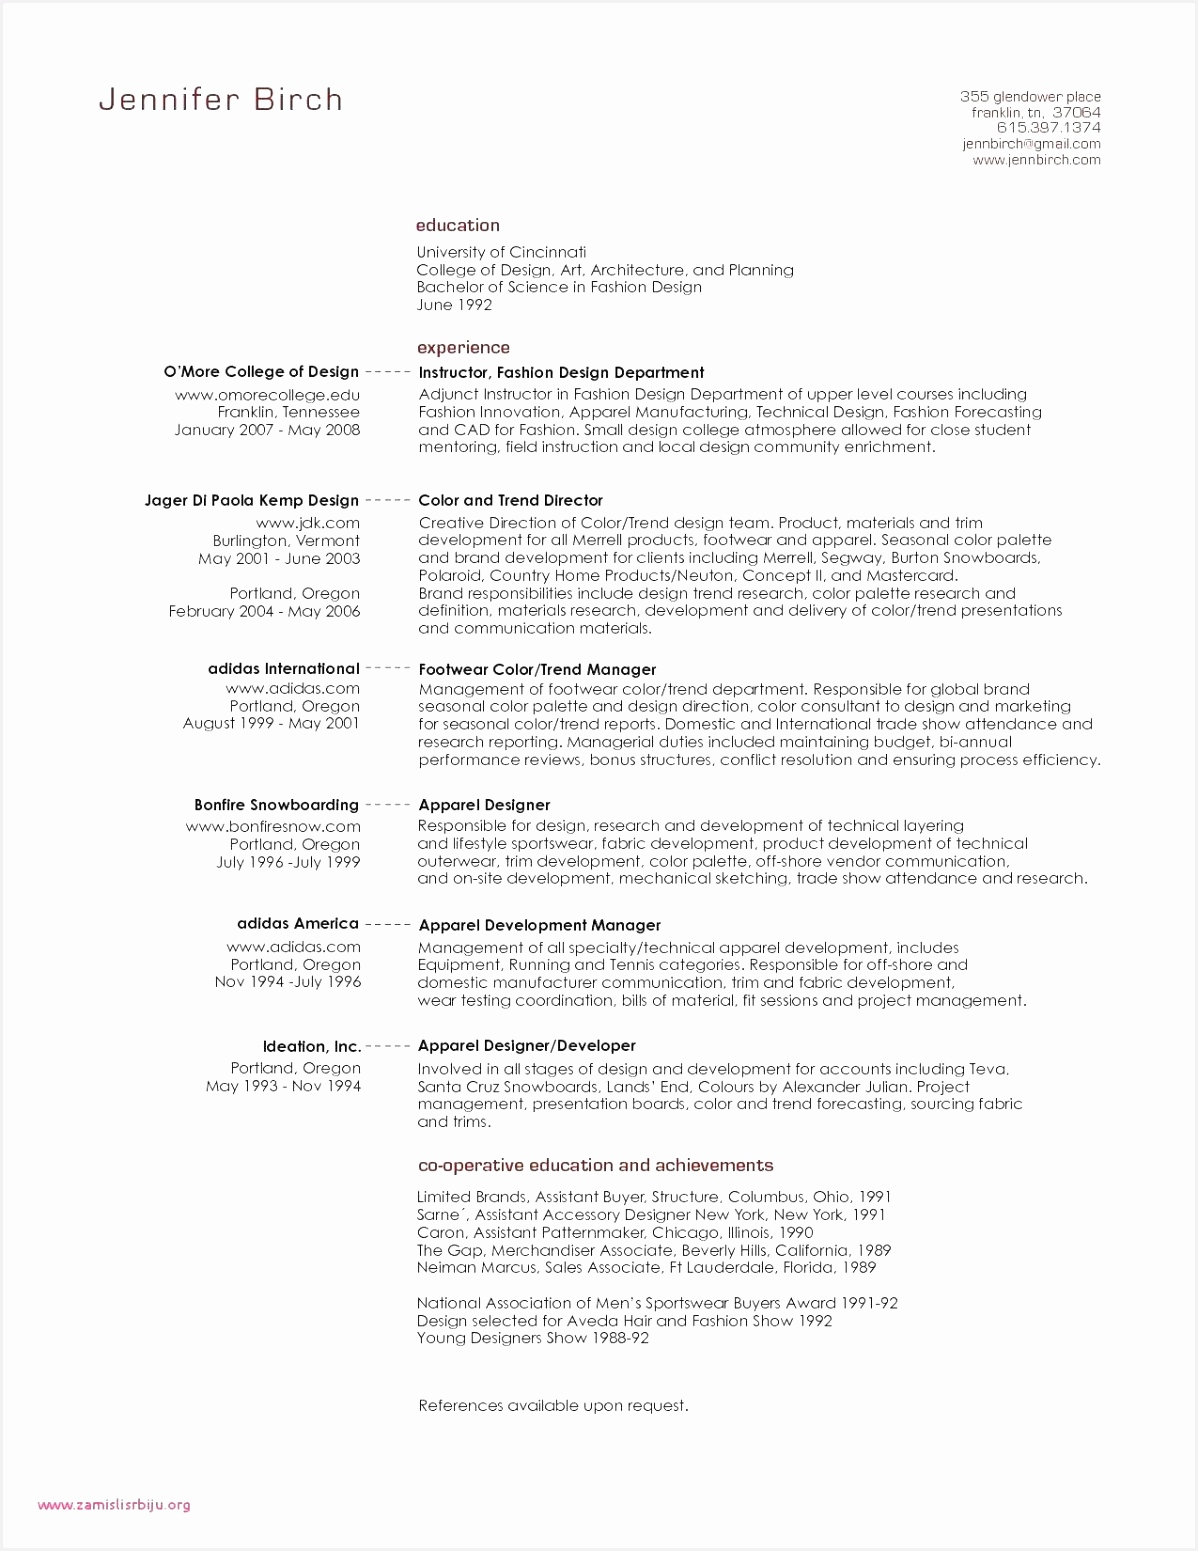 Resume Sample Graduate Student New Sample Nanny Resume Nanny Resume Samples New Nanny Resume 0d 15511198eekzd